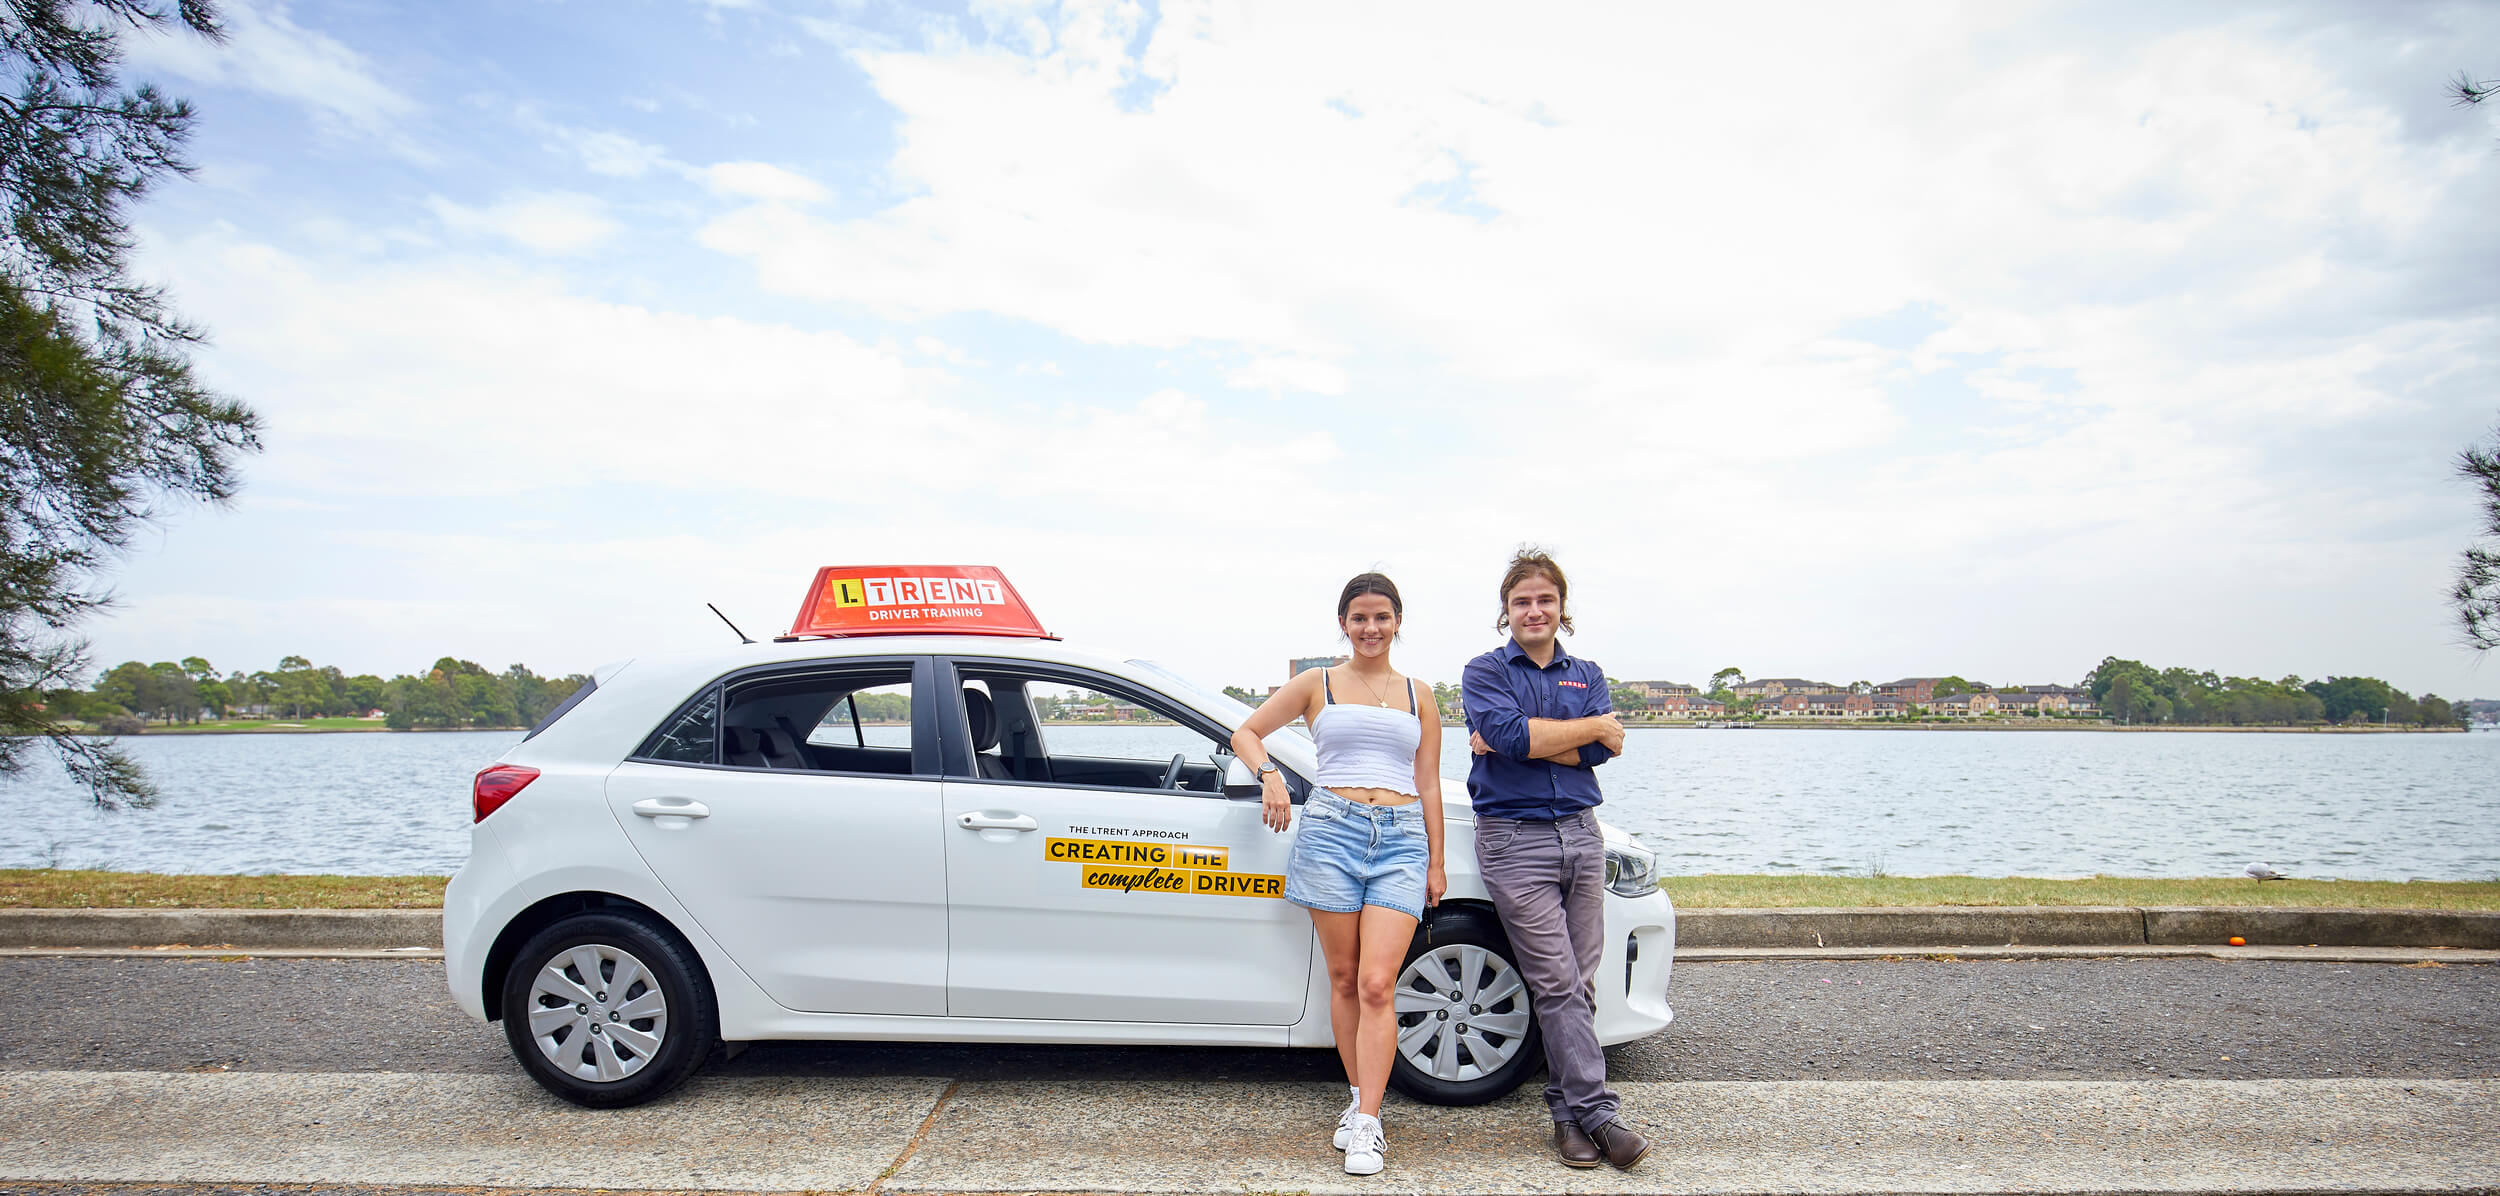 New Road Rules In NSW | LTrent Driving School & Lessons